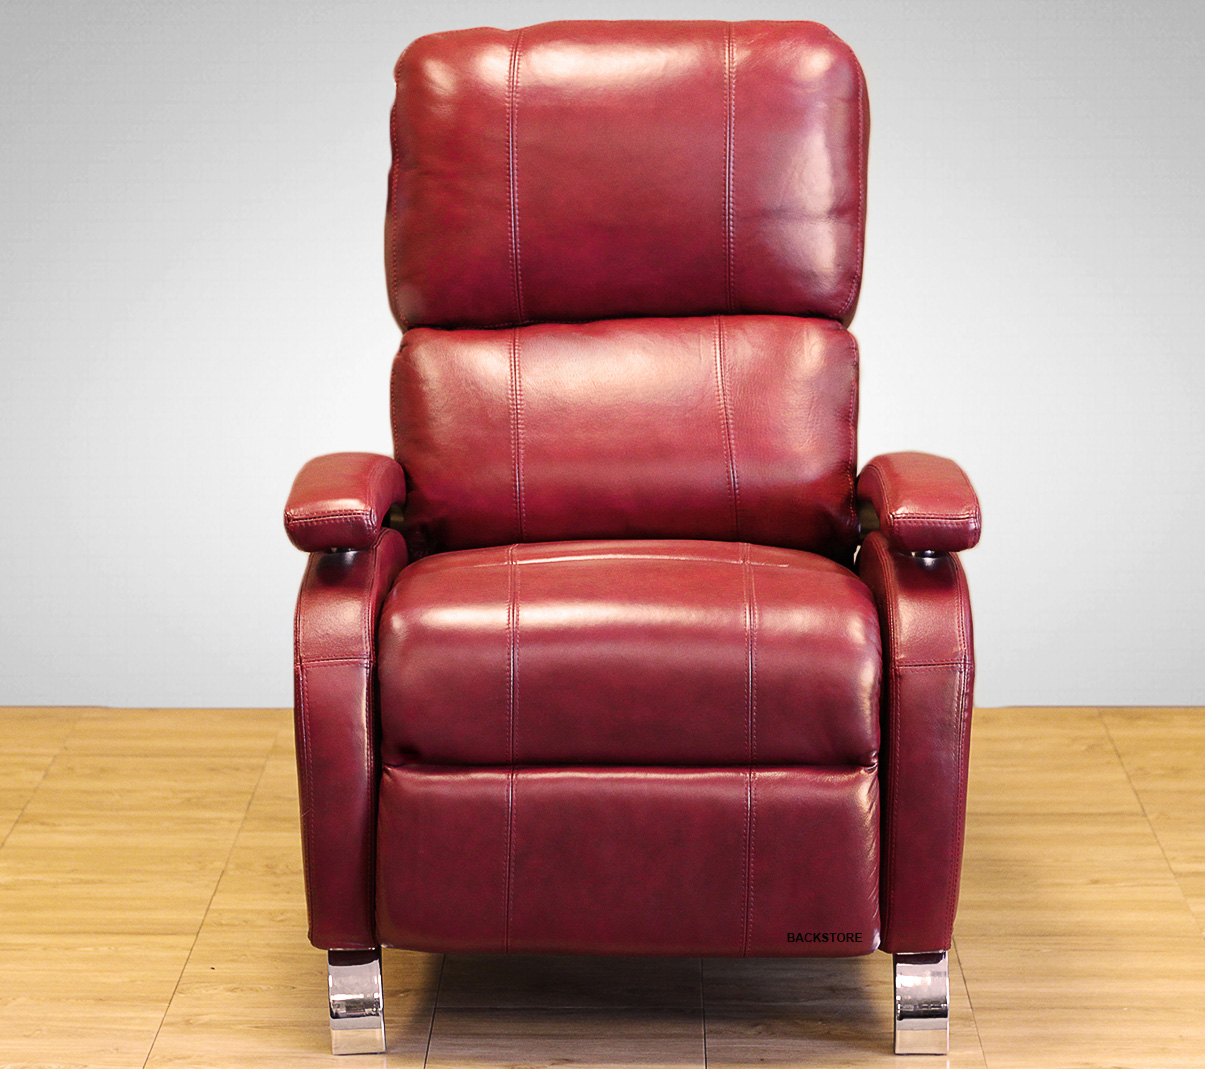 Real Leather Recliner Chairs Barcalounger Oracle Ii Genuine Leather Recliner Lounger